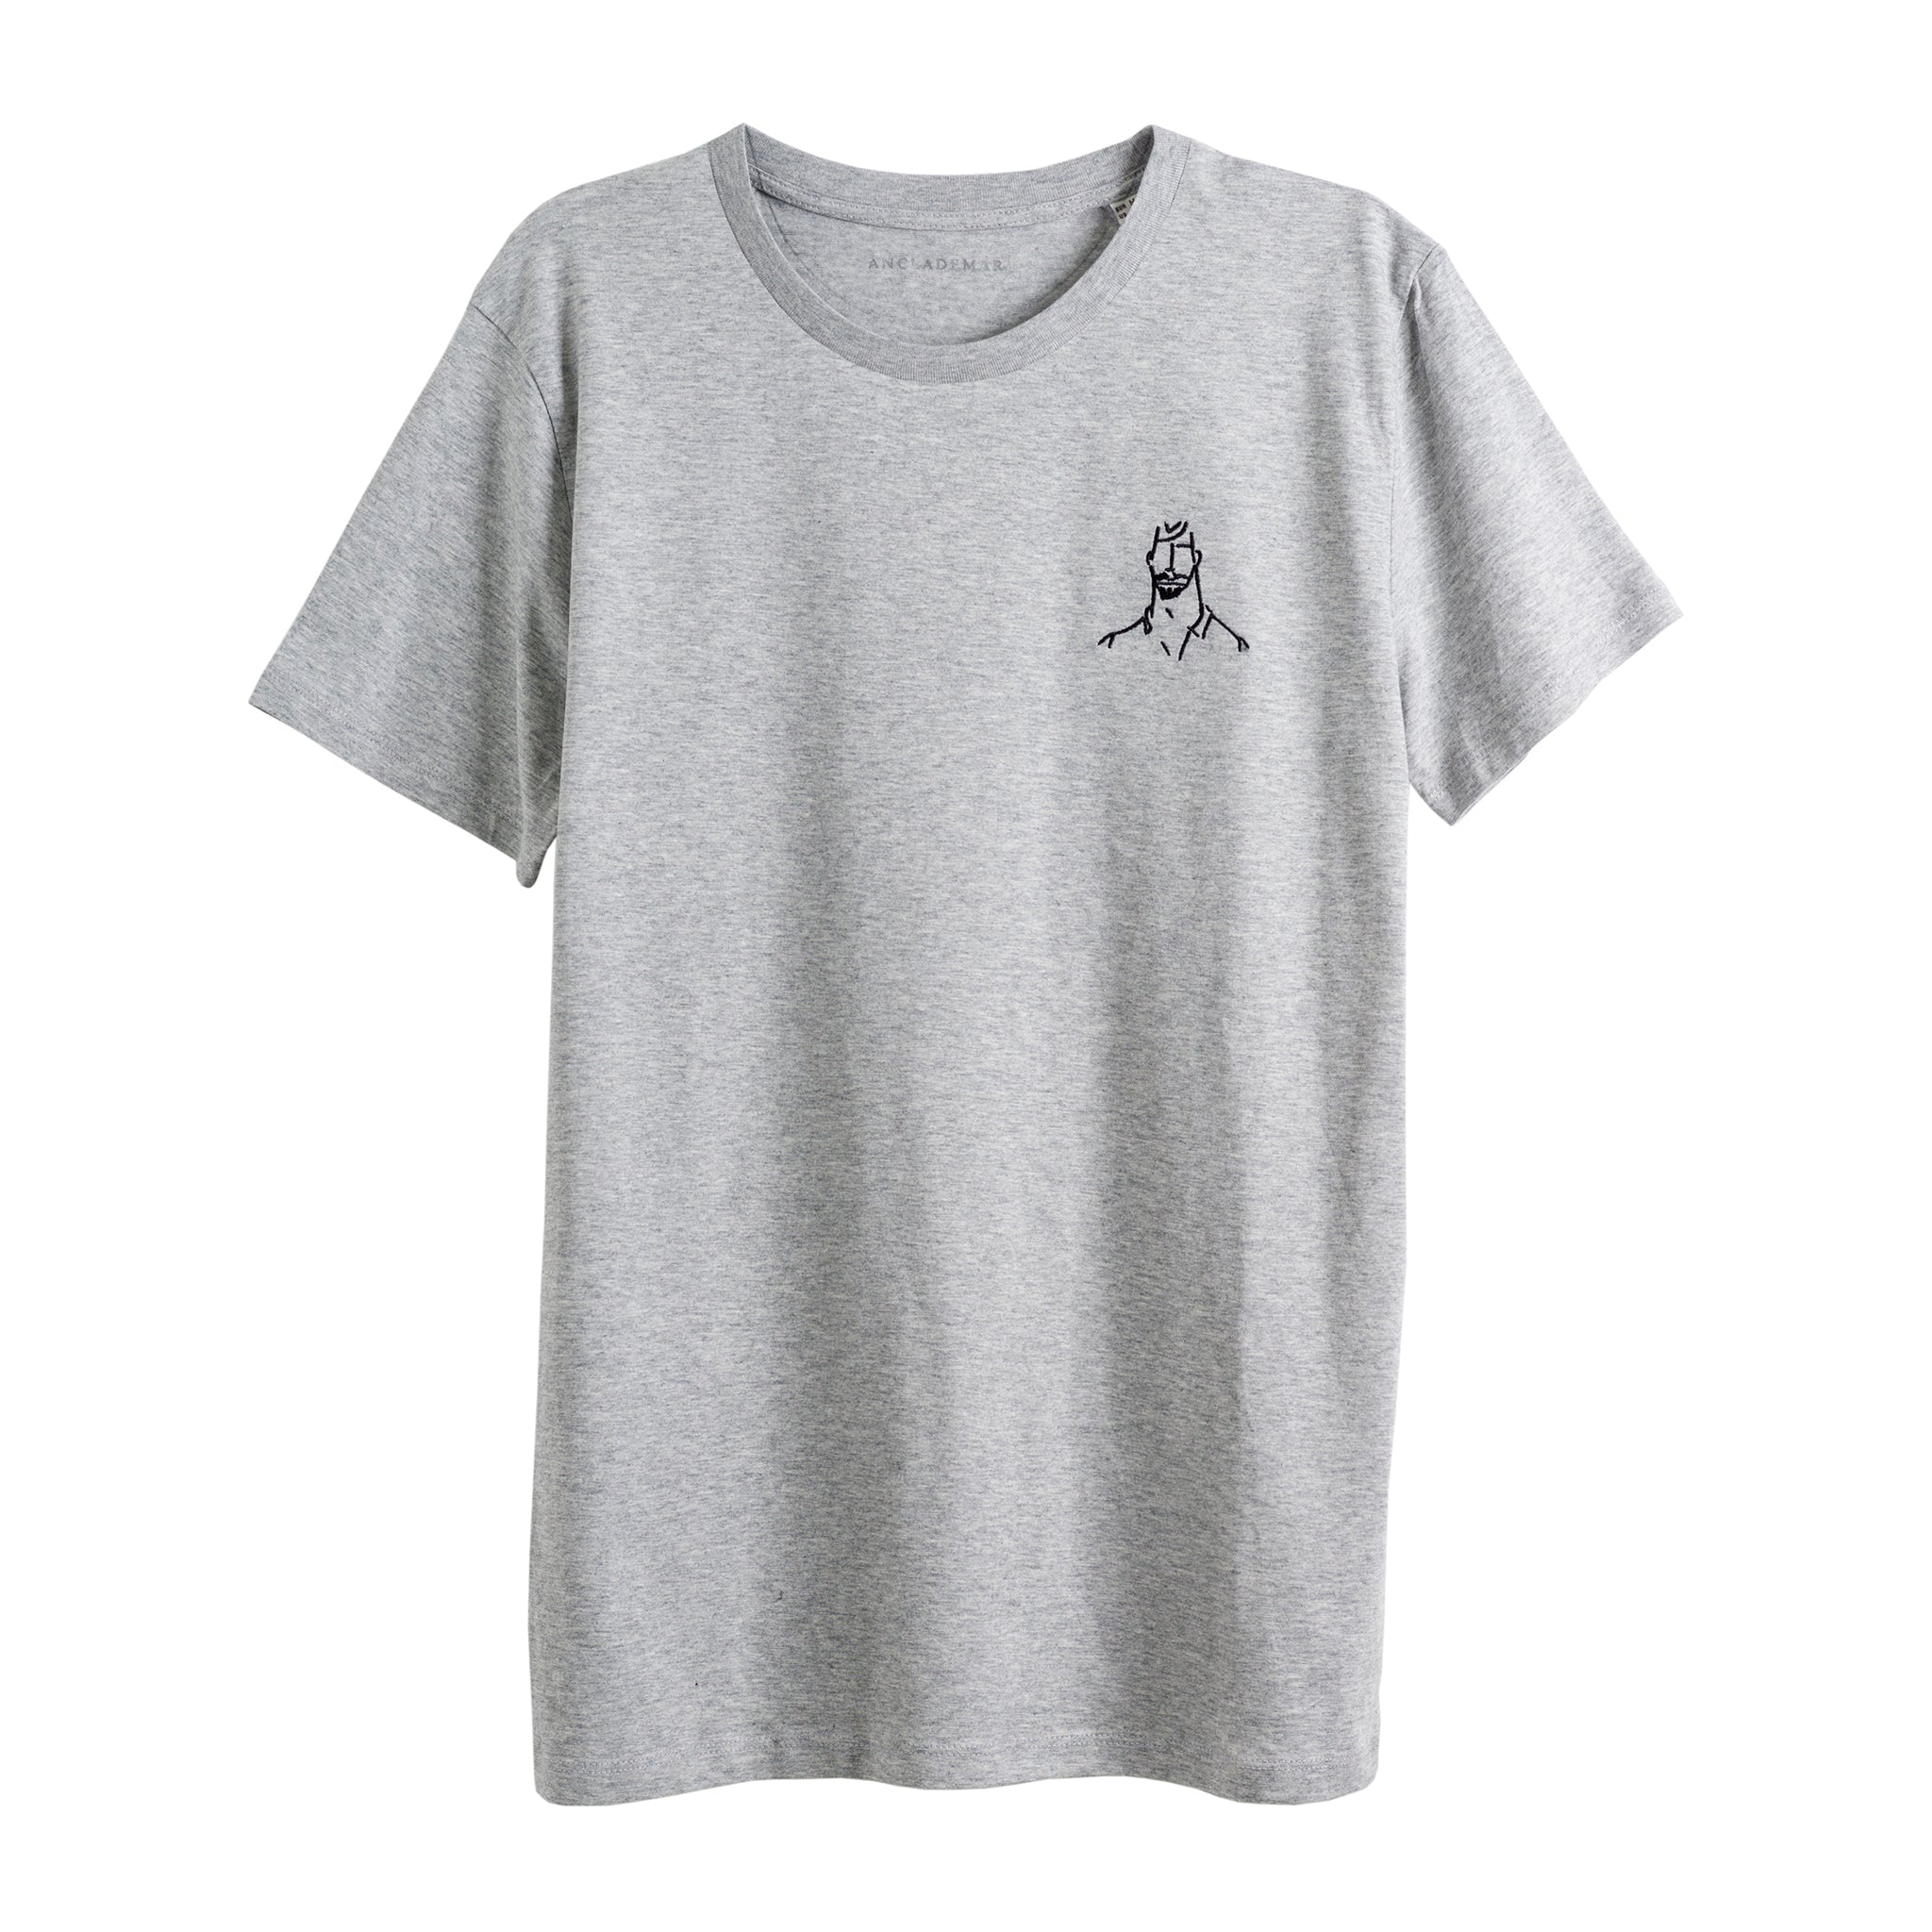 Camiseta Gris Chico Bordado